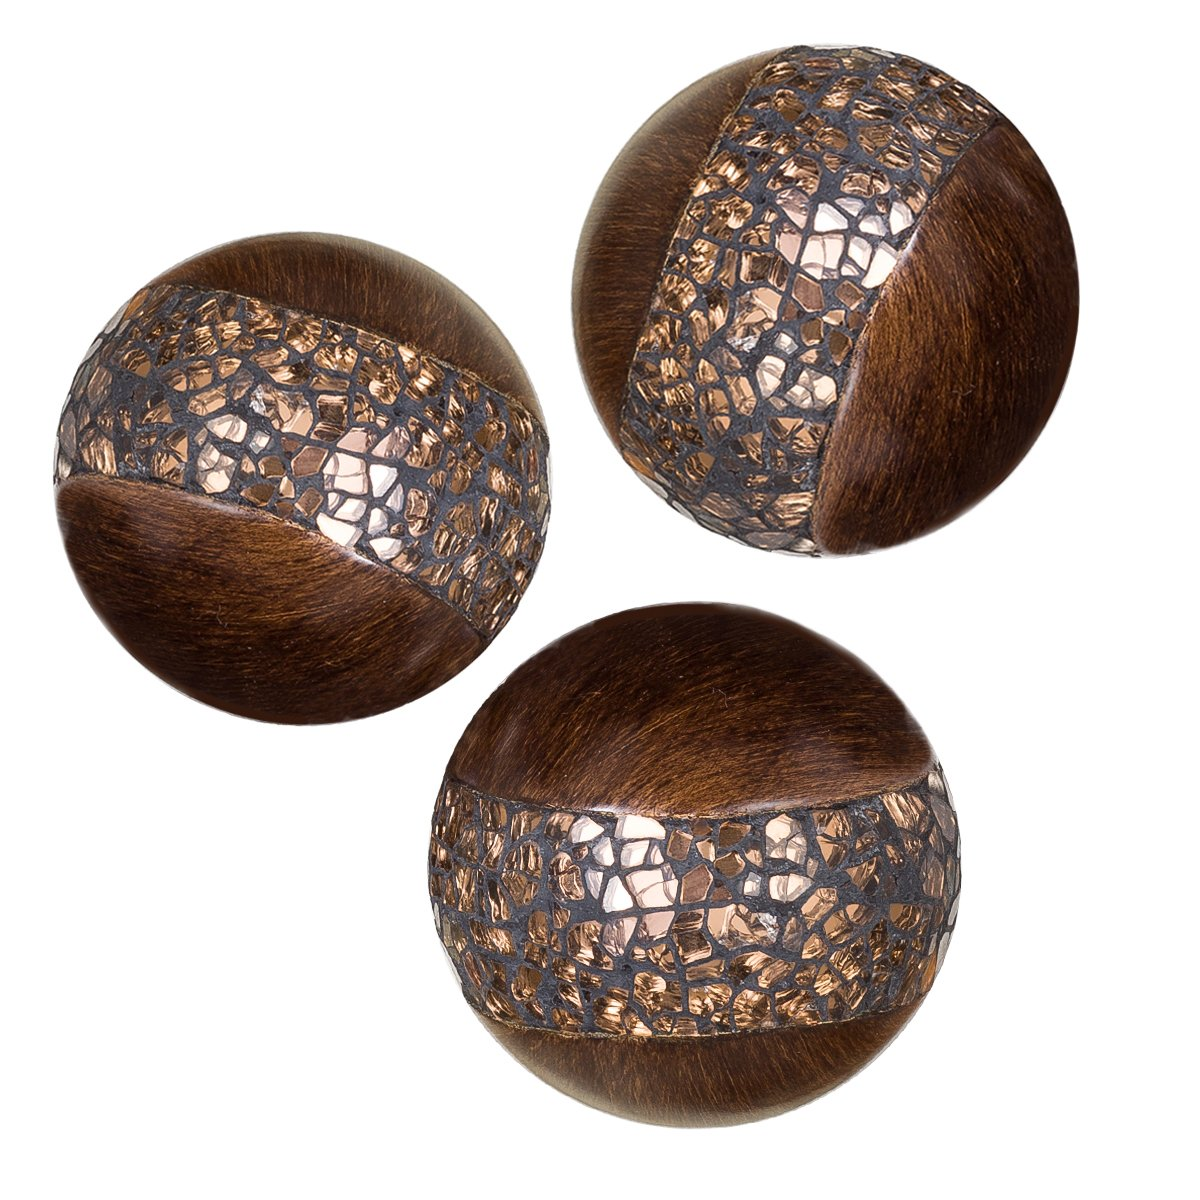 Creative Scents Schonwerk Walnut Decorative Orbs for Bowls and Vases (Set of 3) Resin Sphere Balls | Dining/Coffee Table Centerpiece | Great Gift Idea (Crackled Mosaic) by Creative Scents